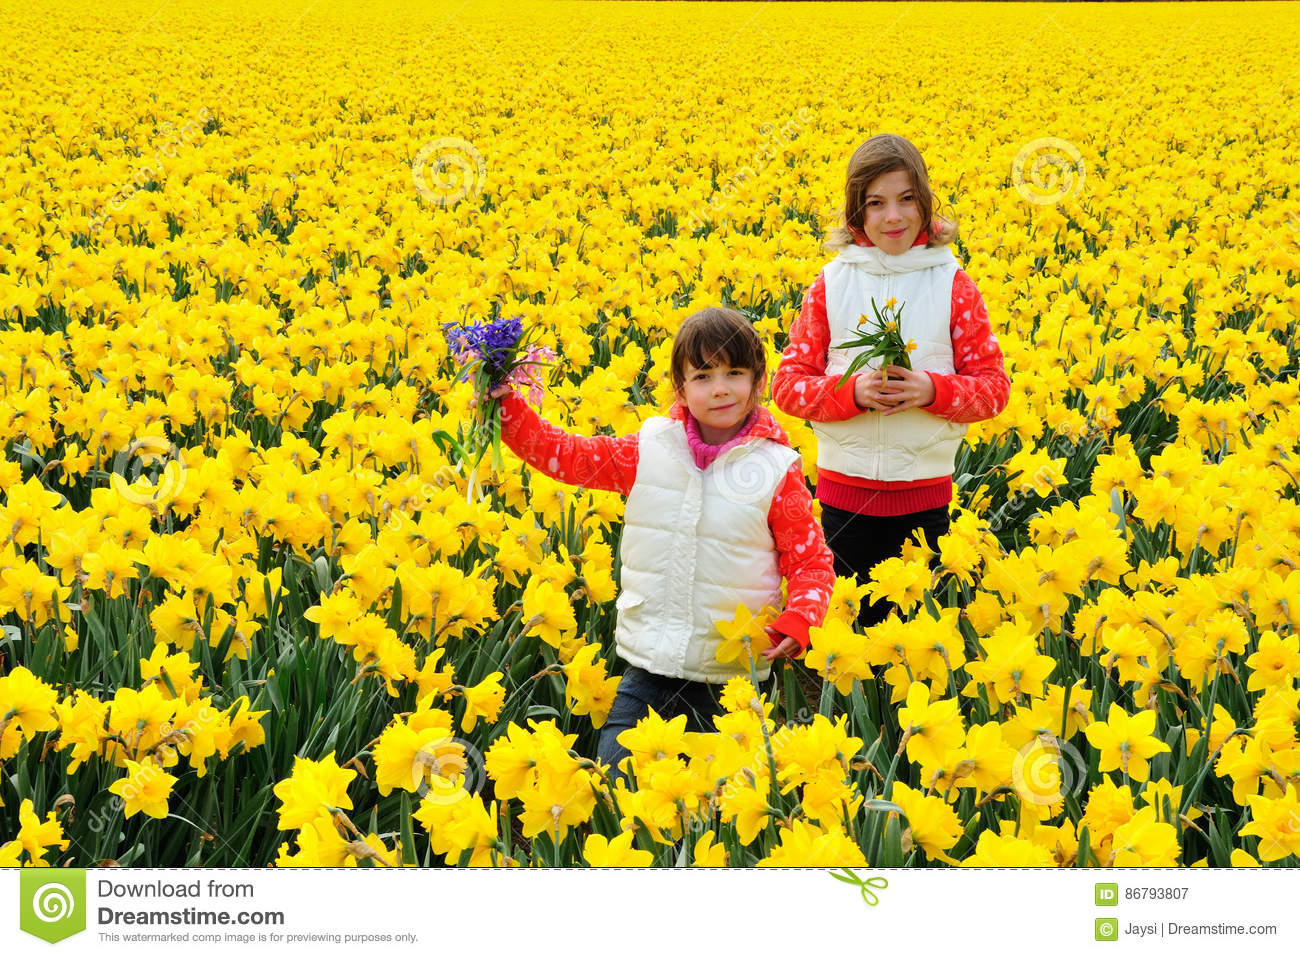 Happy kids with spring flowers on yellow daffodils field children happy kids with spring flowers on yellow daffodils field children on vacation in netherlands mightylinksfo